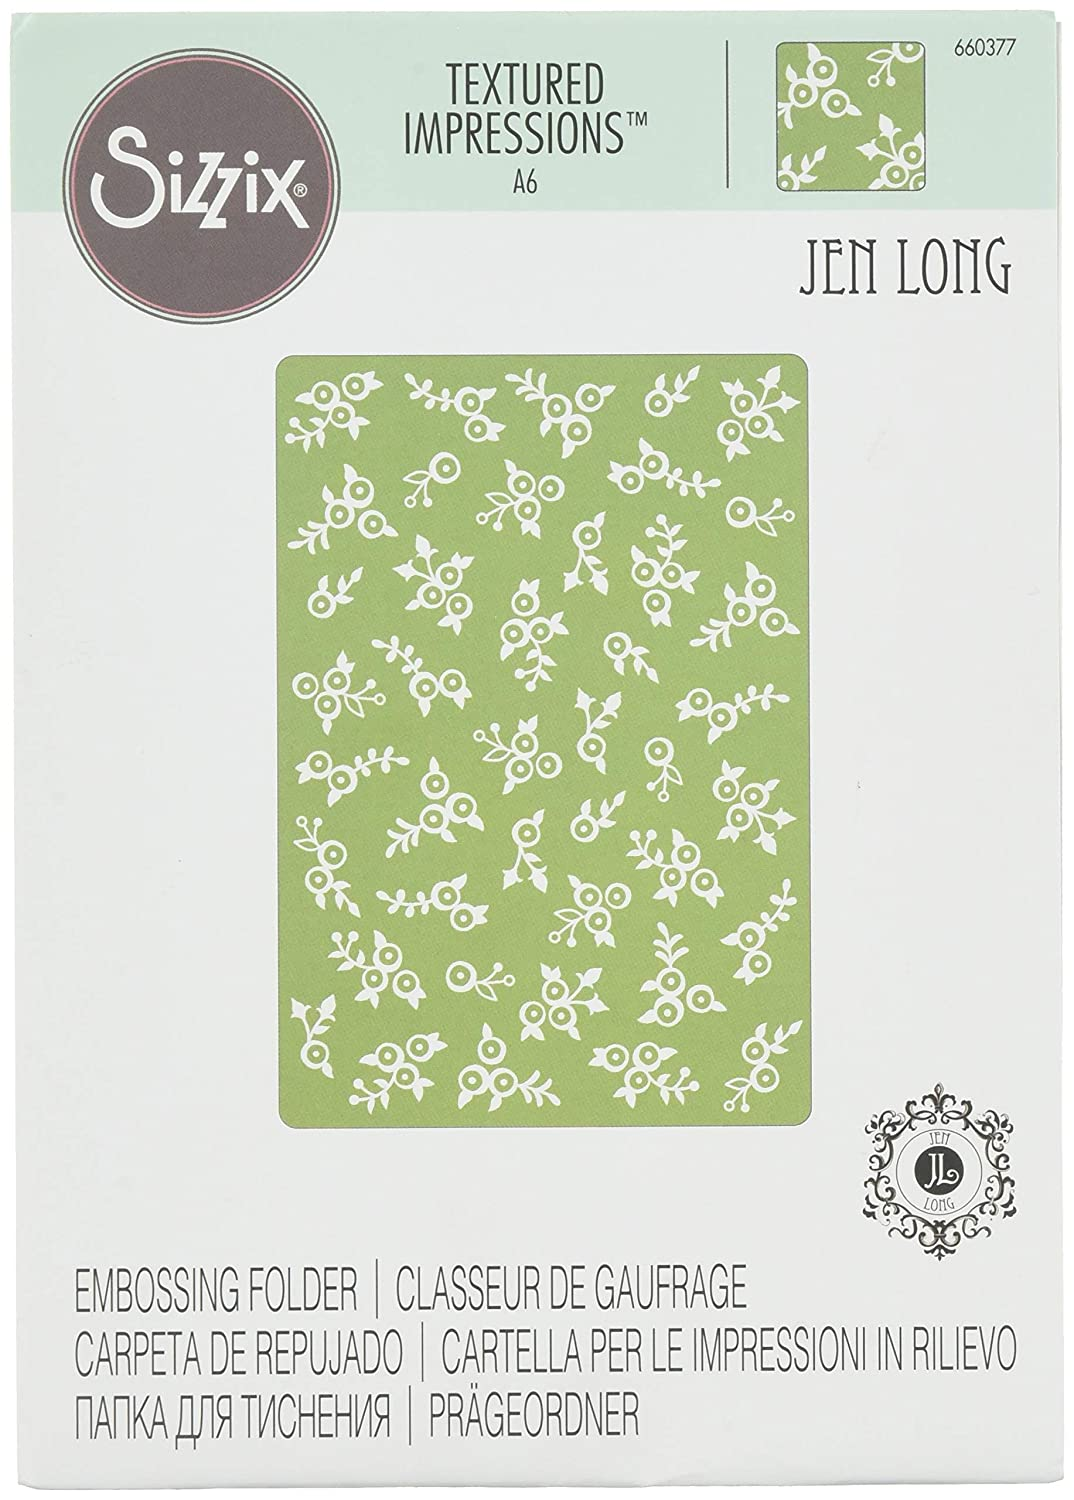 Sizzix 660377 Textured Impressions Embossing Folder Lovely Flowers by Jen Long